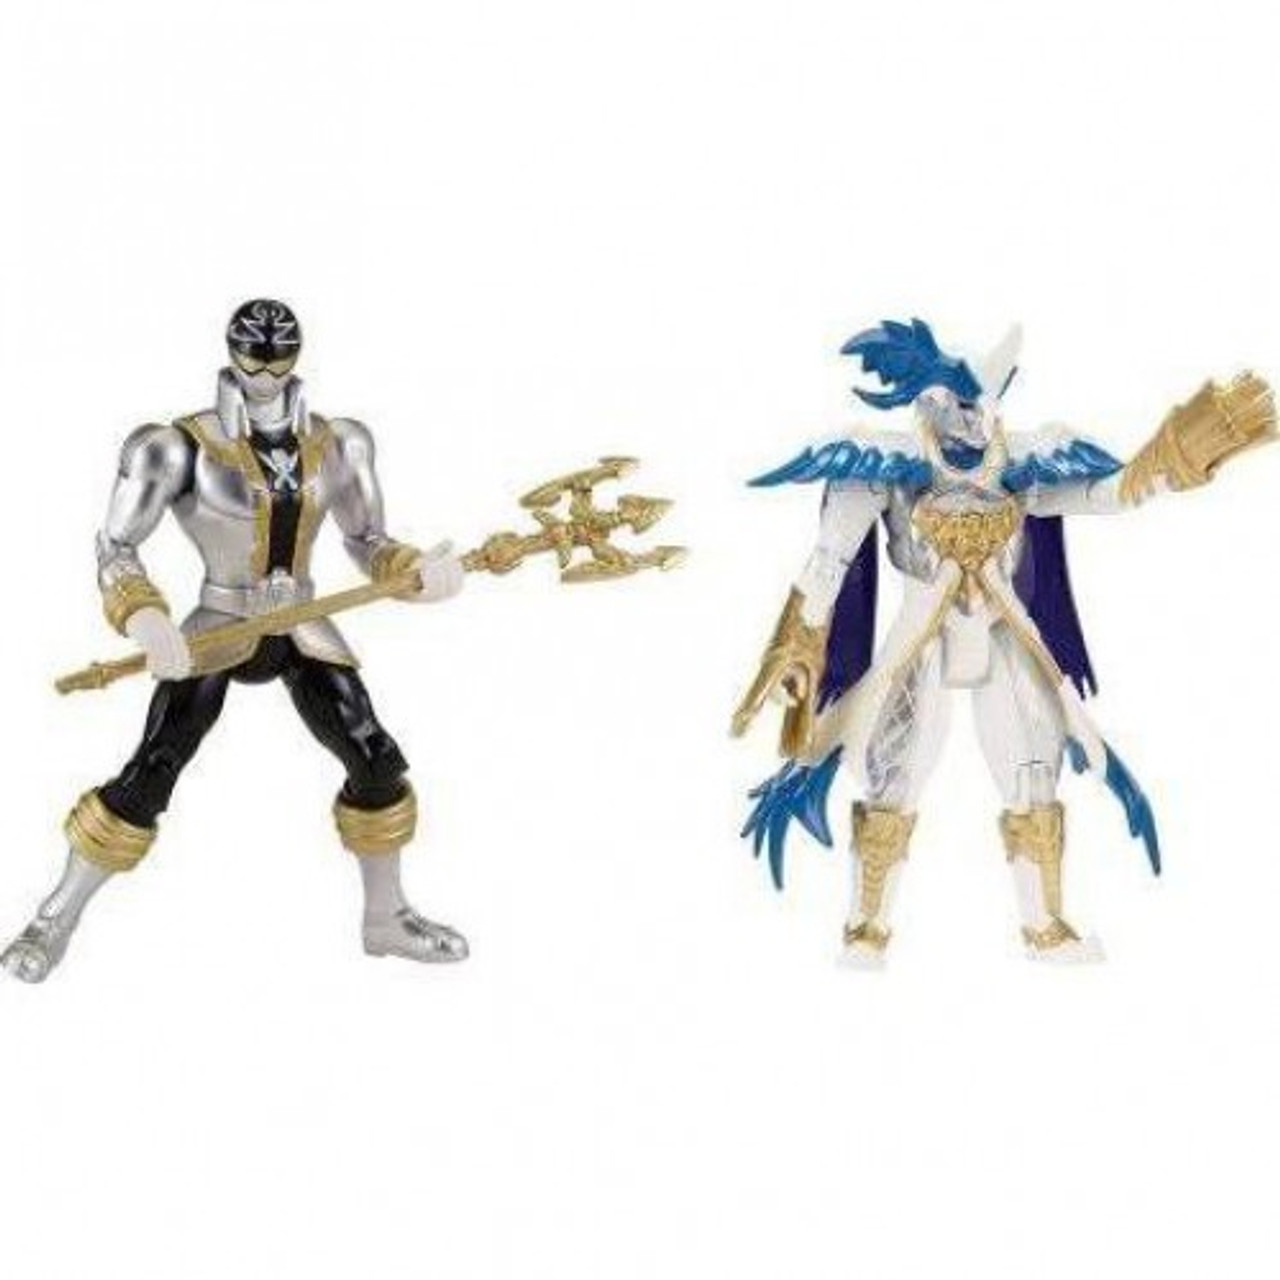 power rangers super megaforce good vs evil silver ranger prince vekar action figure 2 pack damaged package bandai america toywiz usd